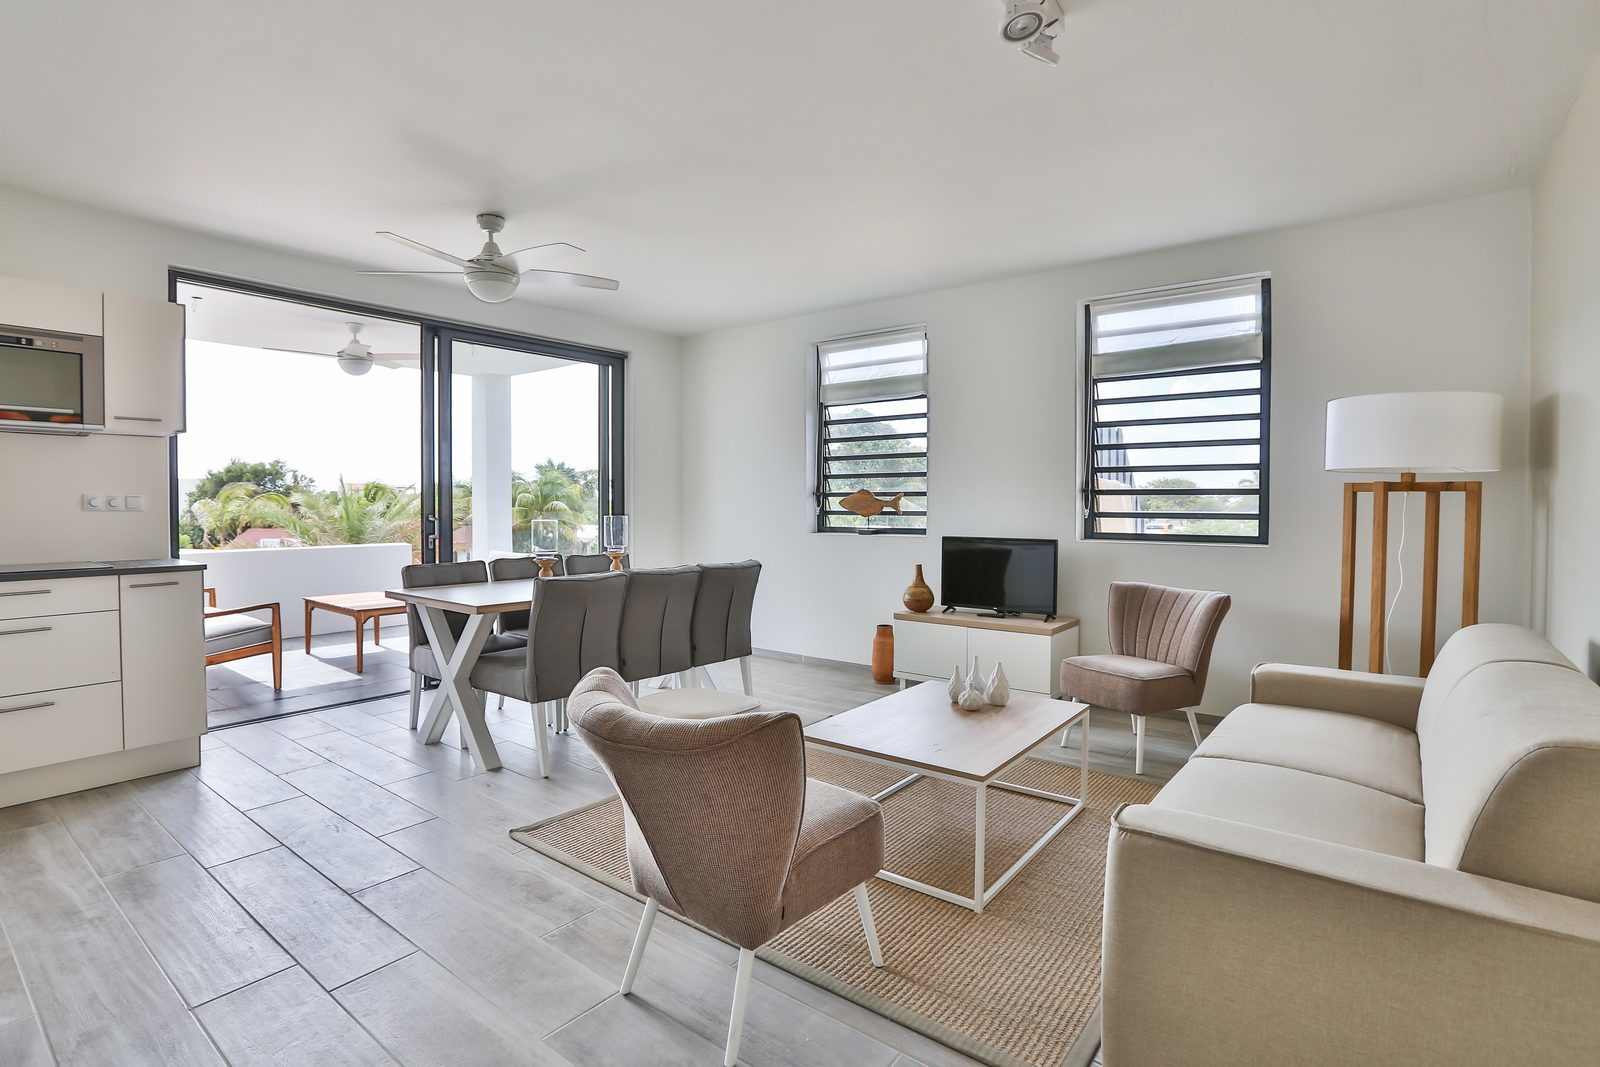 Looking for an apartment on Bonaire? View the available accommodations on our resort here.